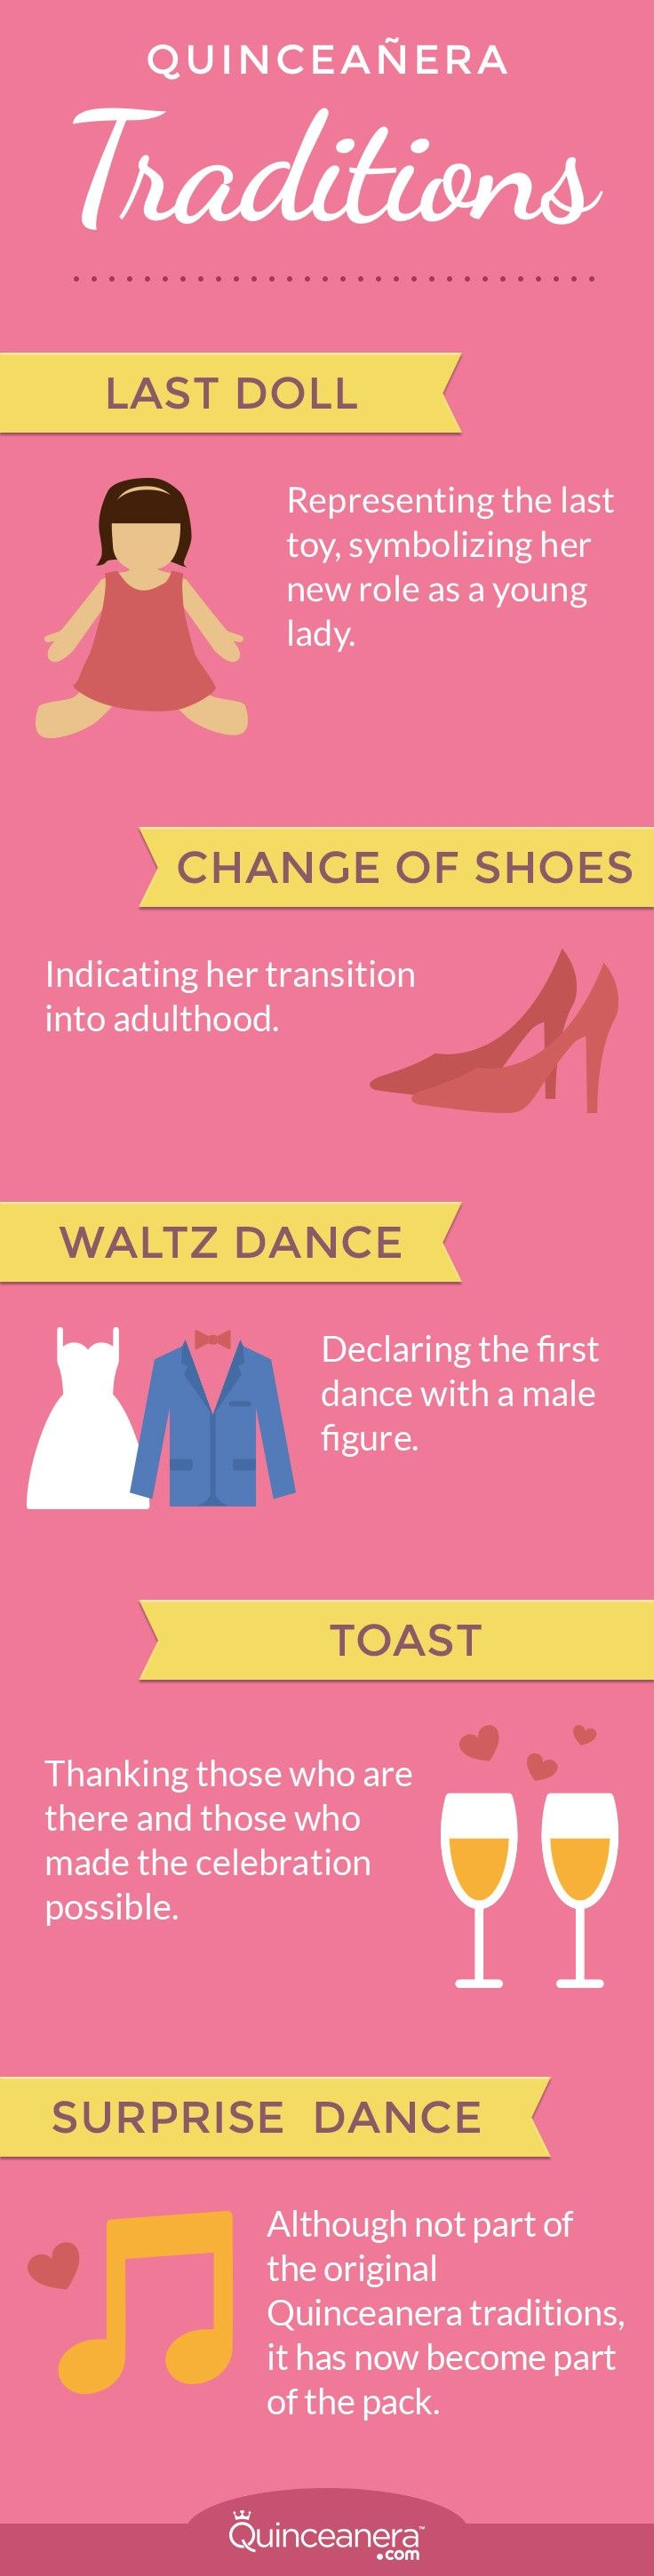 Why is it important to have a Quinceanera? http://www.quinceanera.com/traditions/the-celebration-of-the-quinceanera-and-its-origins/?utm_source=pinterest&utm_medium=social&utm_campaign=article-112315-traditions-the-celebration-of-the-quinceanera-and-its-origins